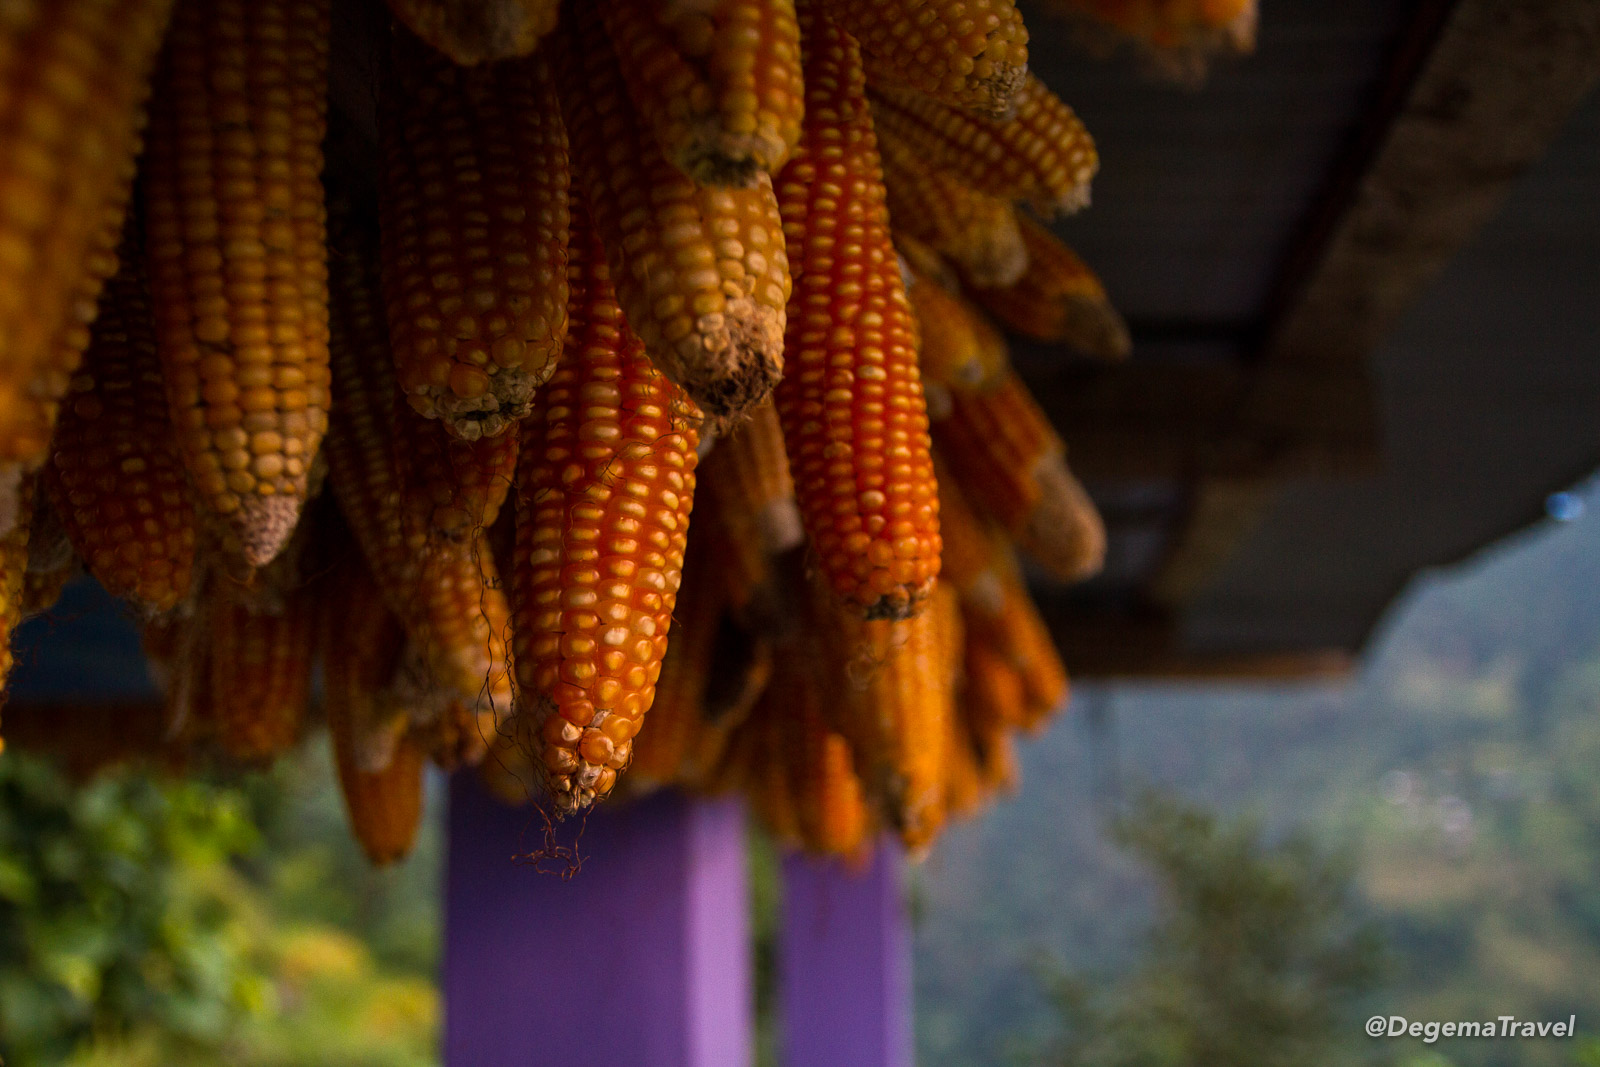 Corn hung out to dry at a teahouse in the Annapurna Conservation Area near Ulleri, Nepal